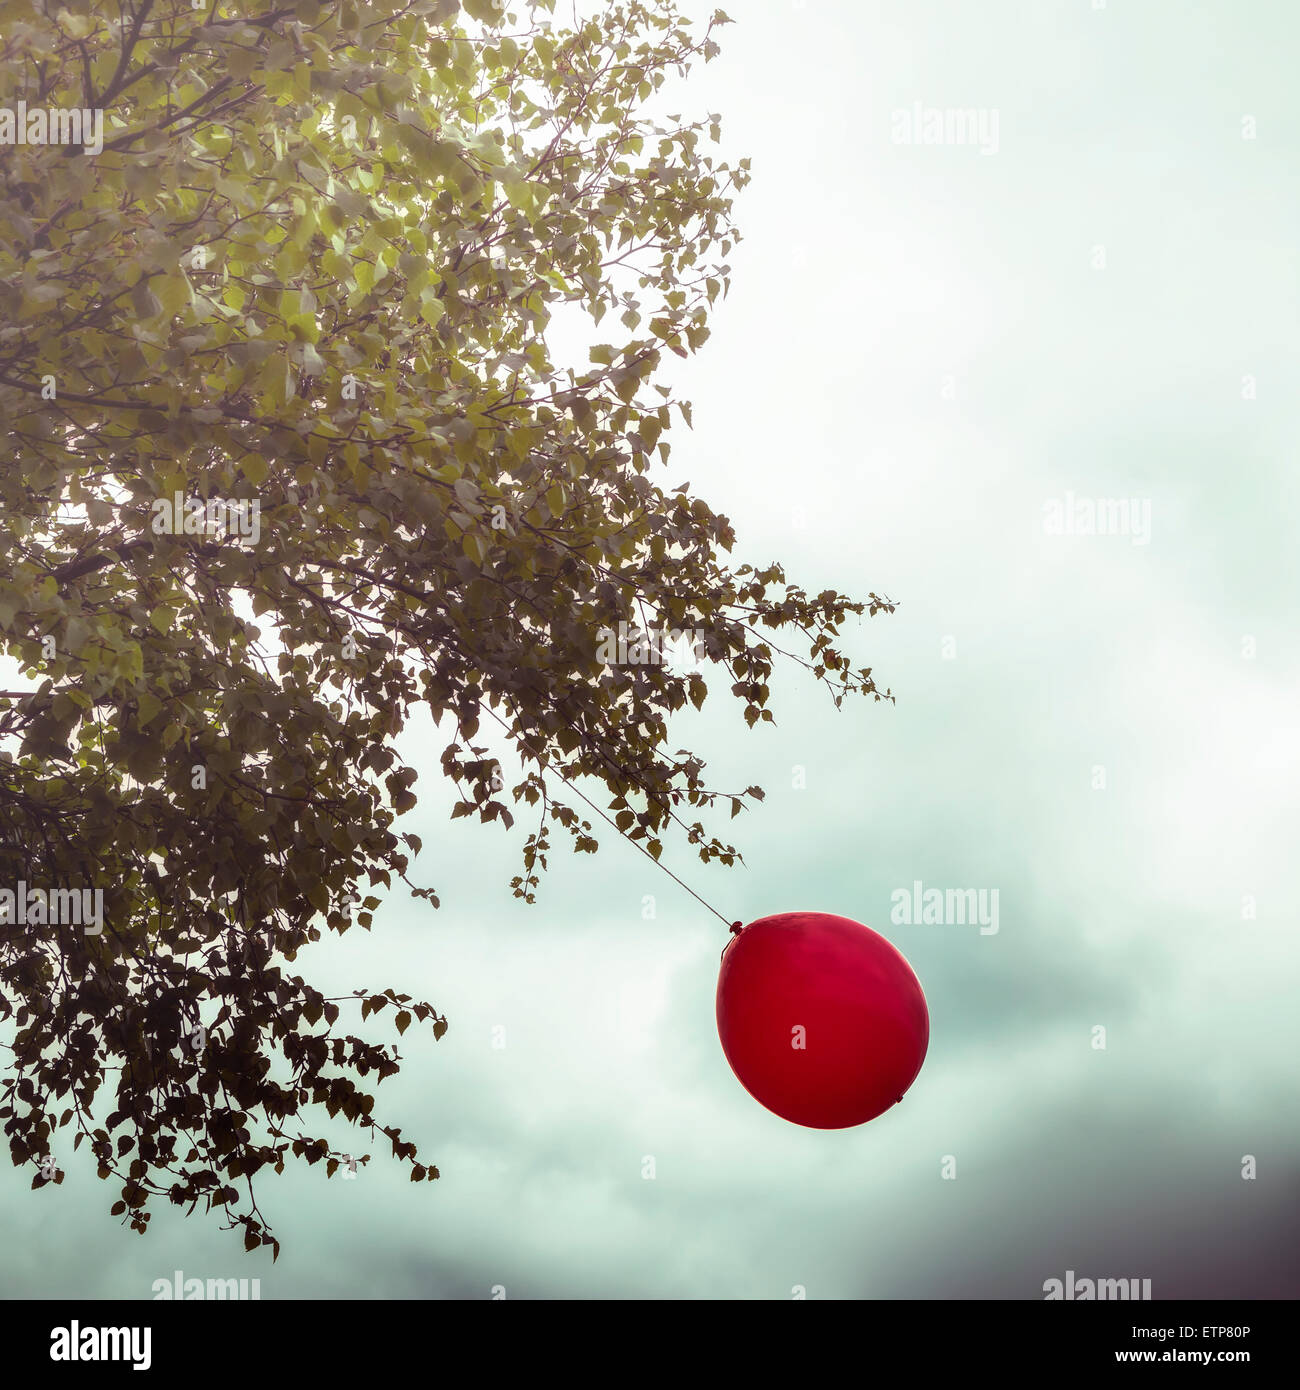 a red balloon hanging on a tree - Stock Image